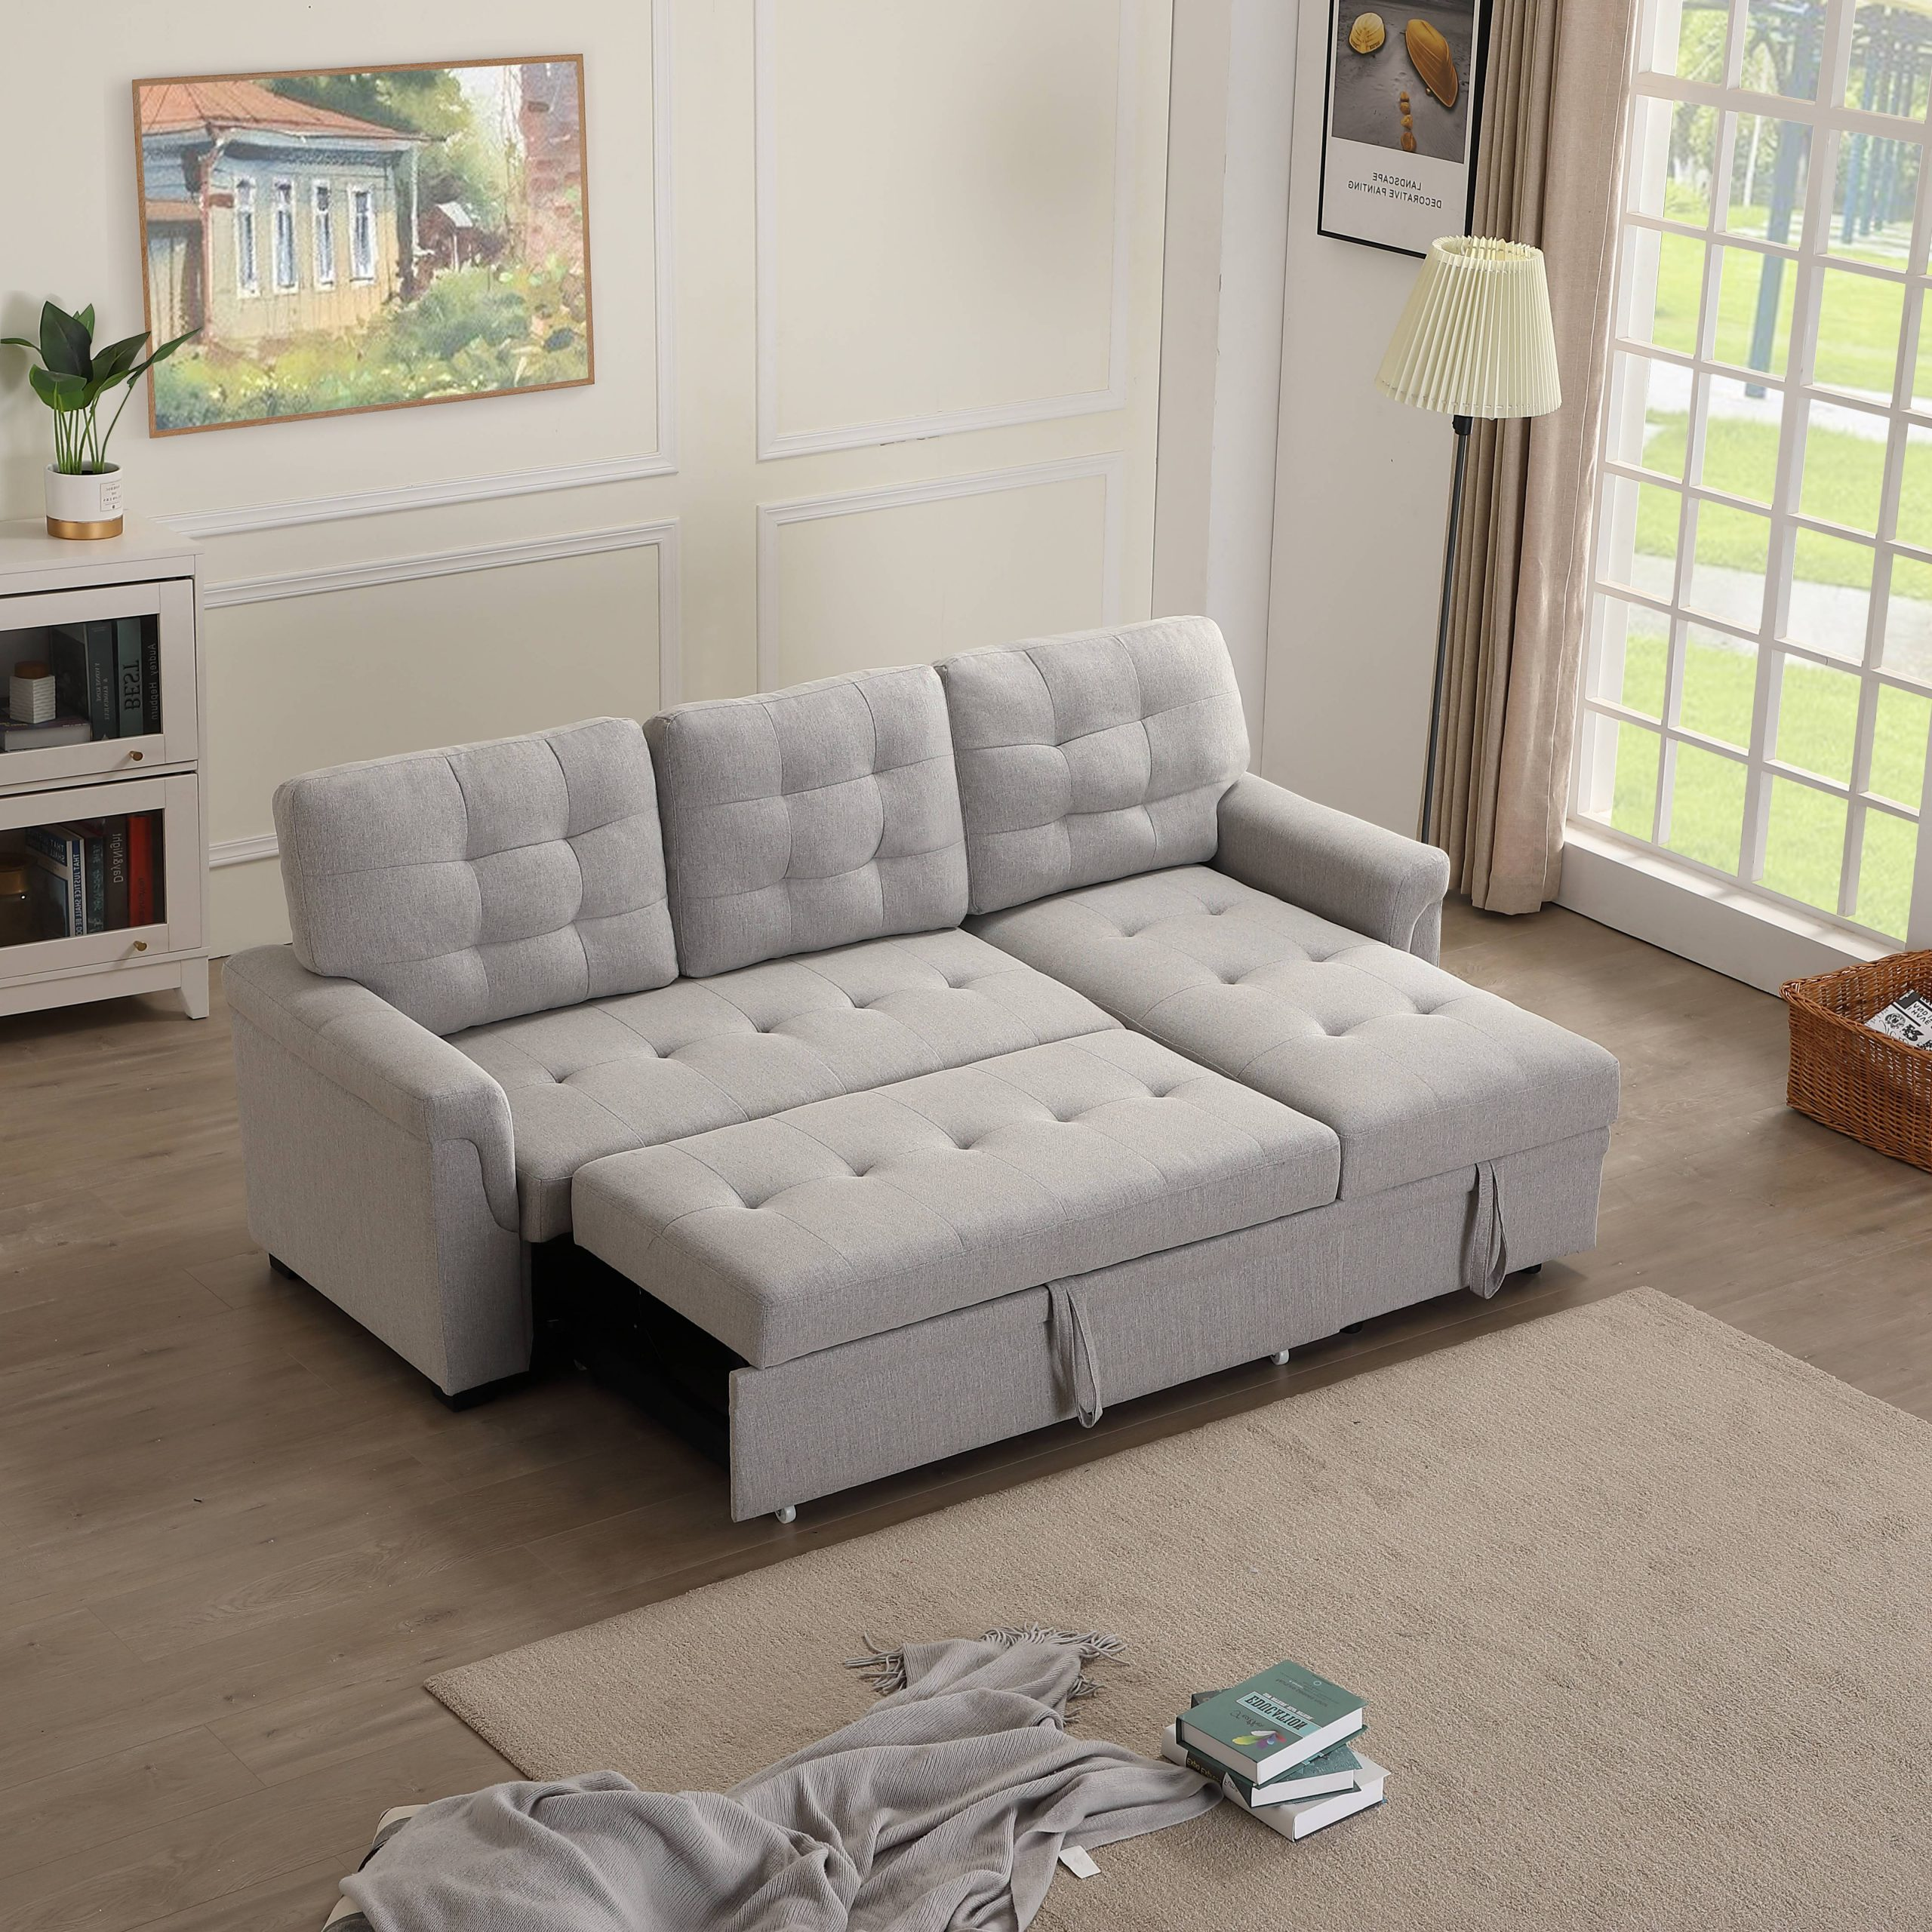 Liberty Sectional Futon Sofas With Storage Pertaining To Most Recently Released Upholstery Twin Sleeper Tufted Sofa Bed For Livingroom,  (View 14 of 20)